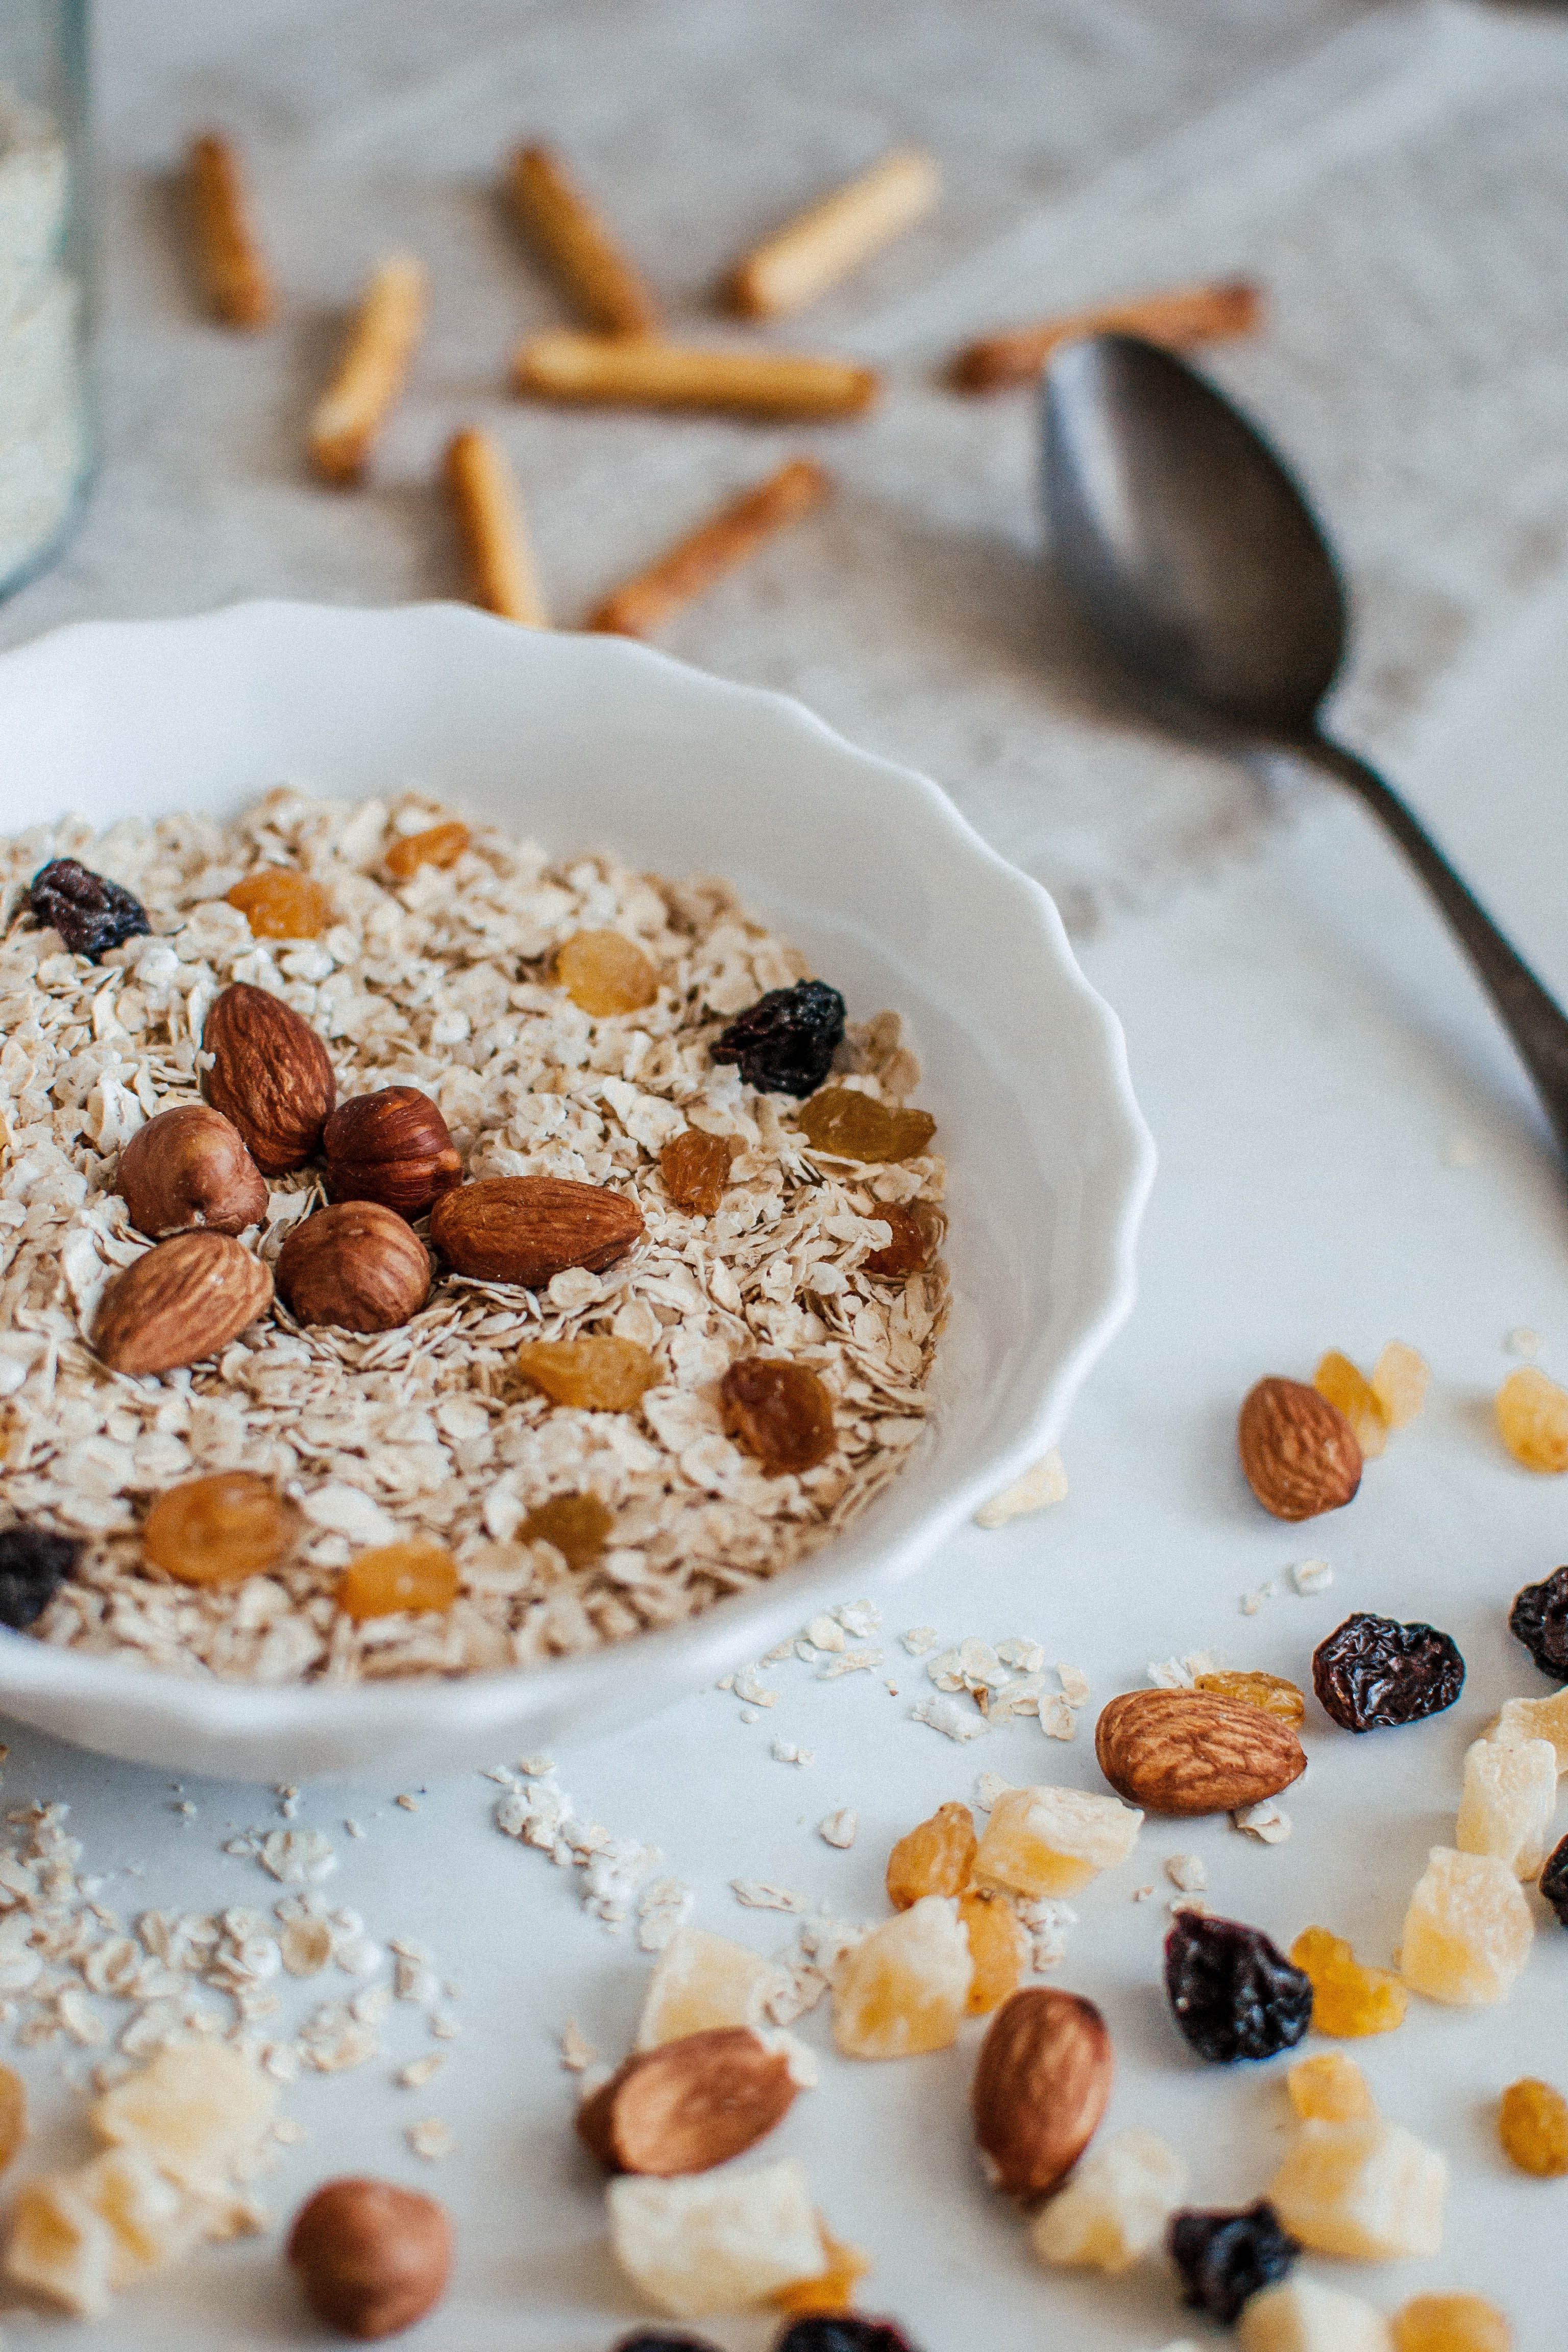 Bowl of Oats and Nuts